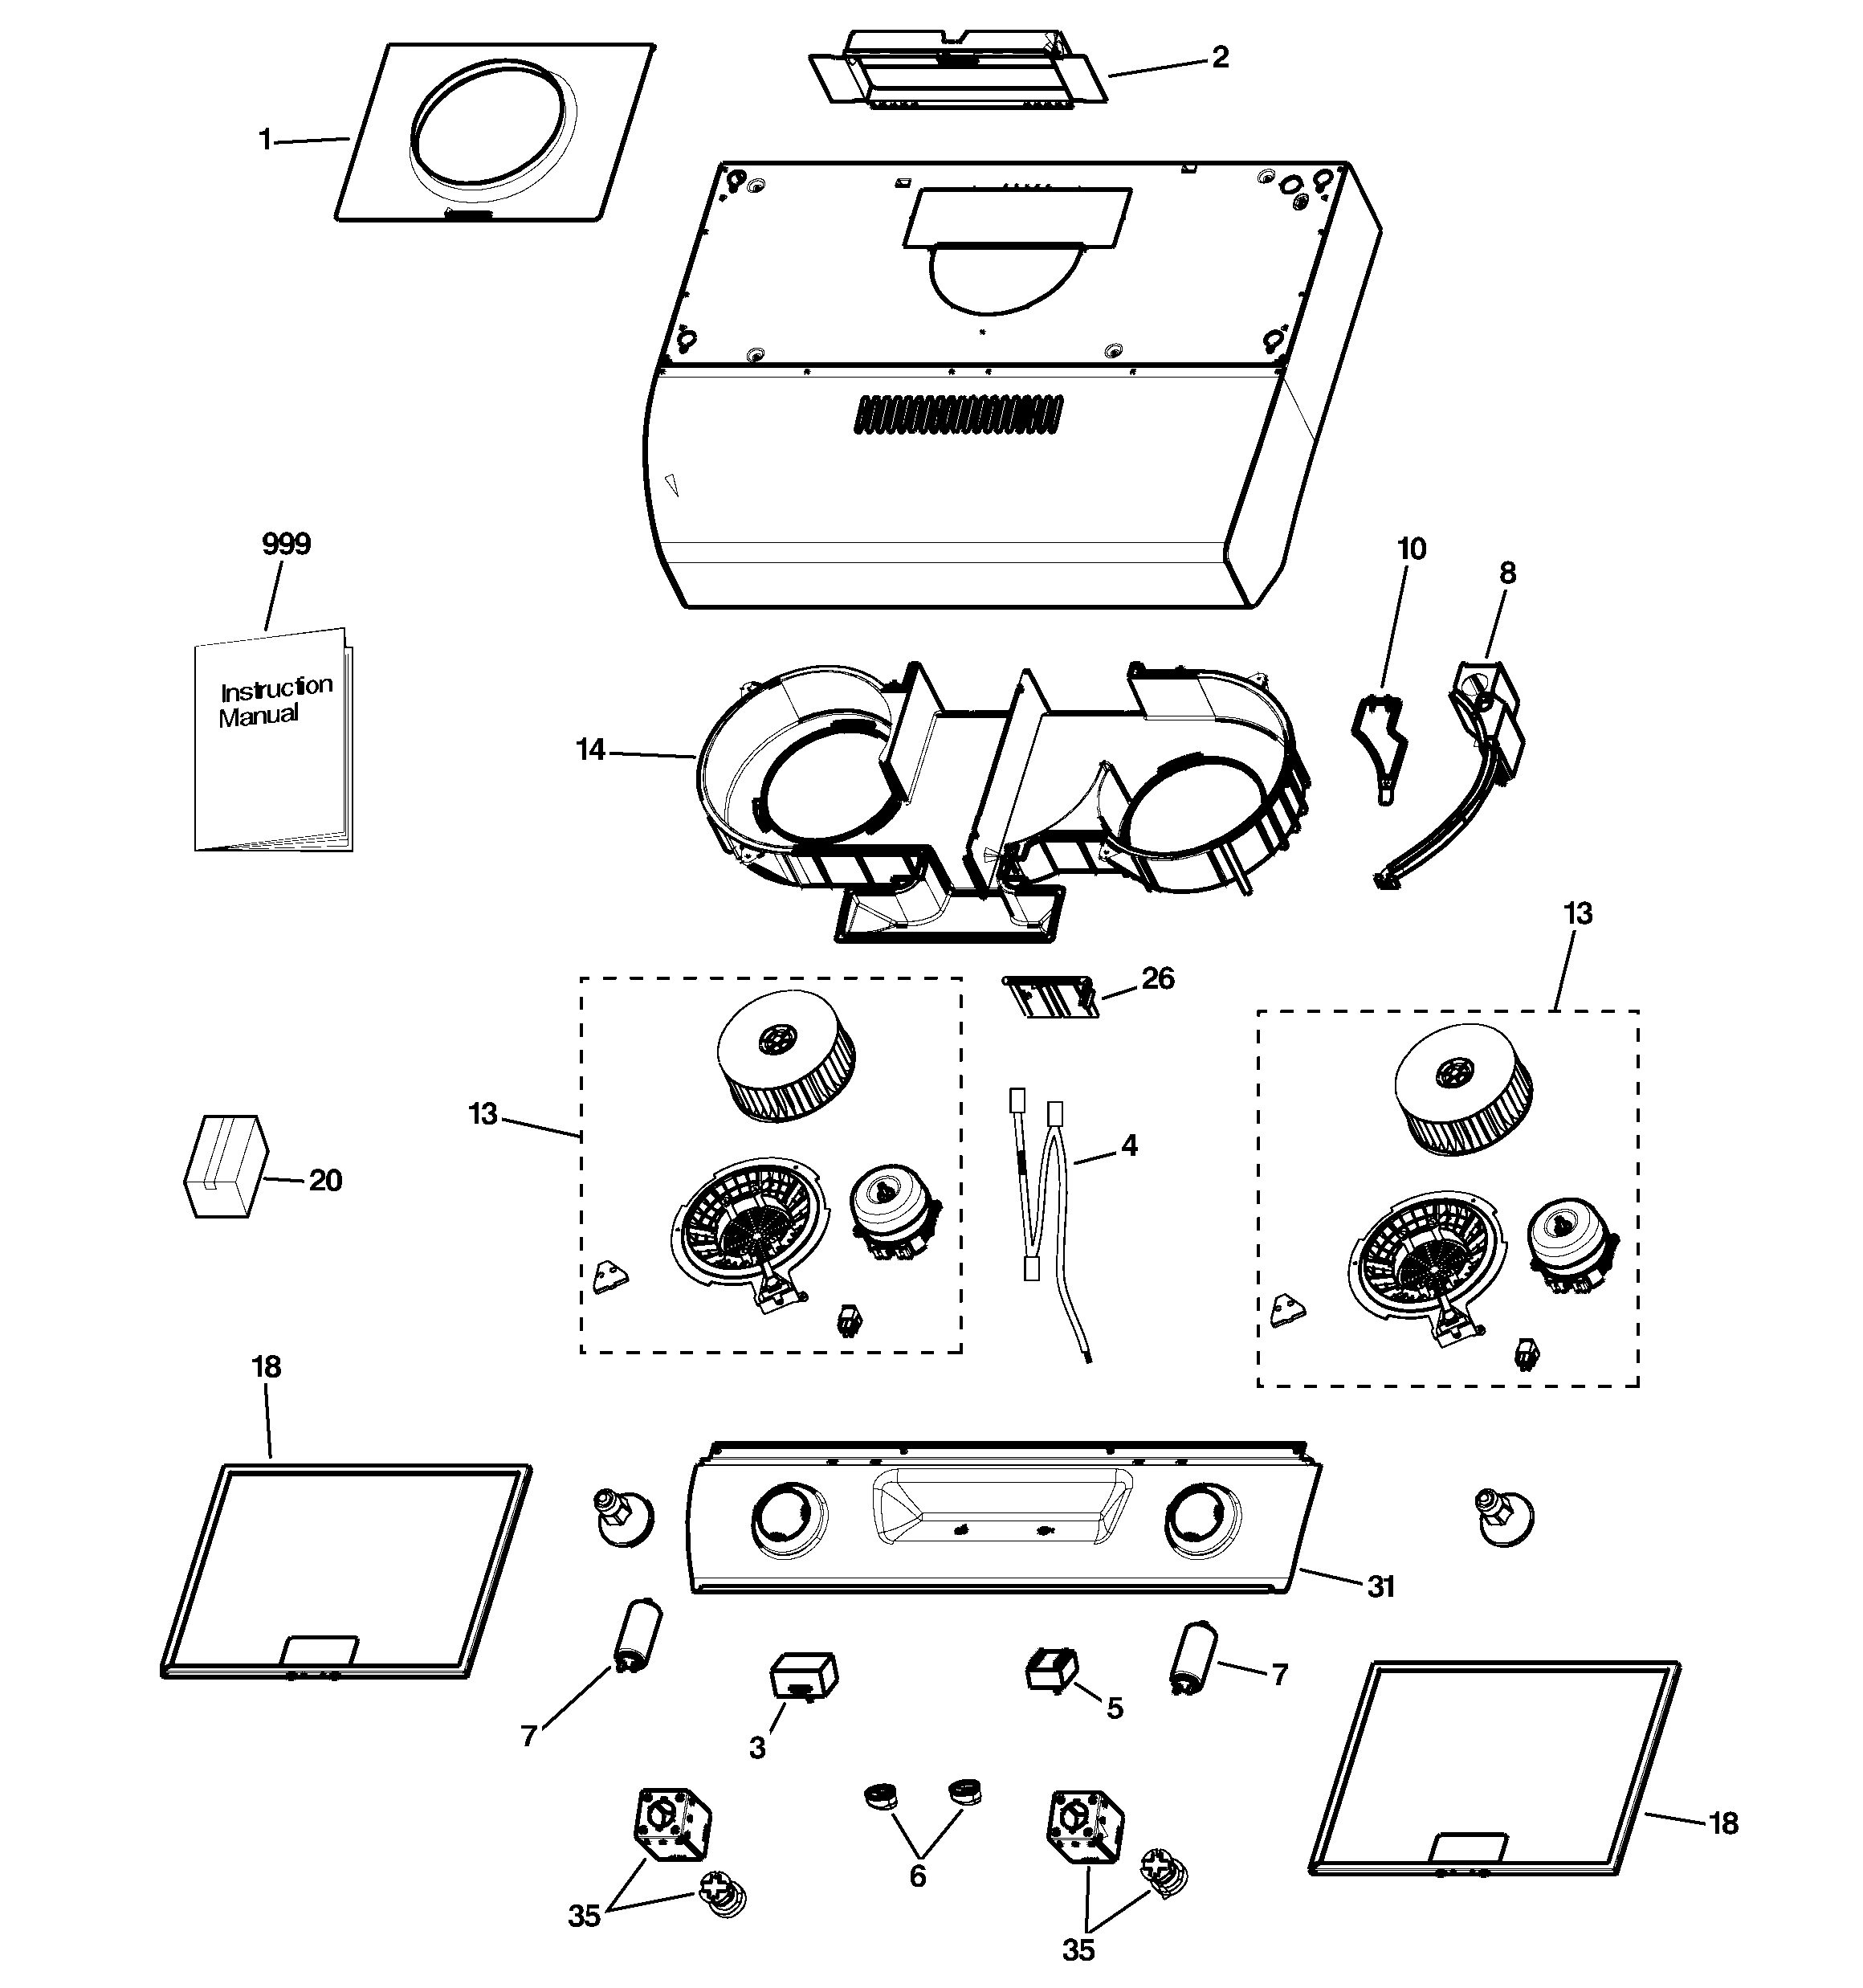 RANGE HOOD Diagram & Parts List for Model jv636h1ss GE